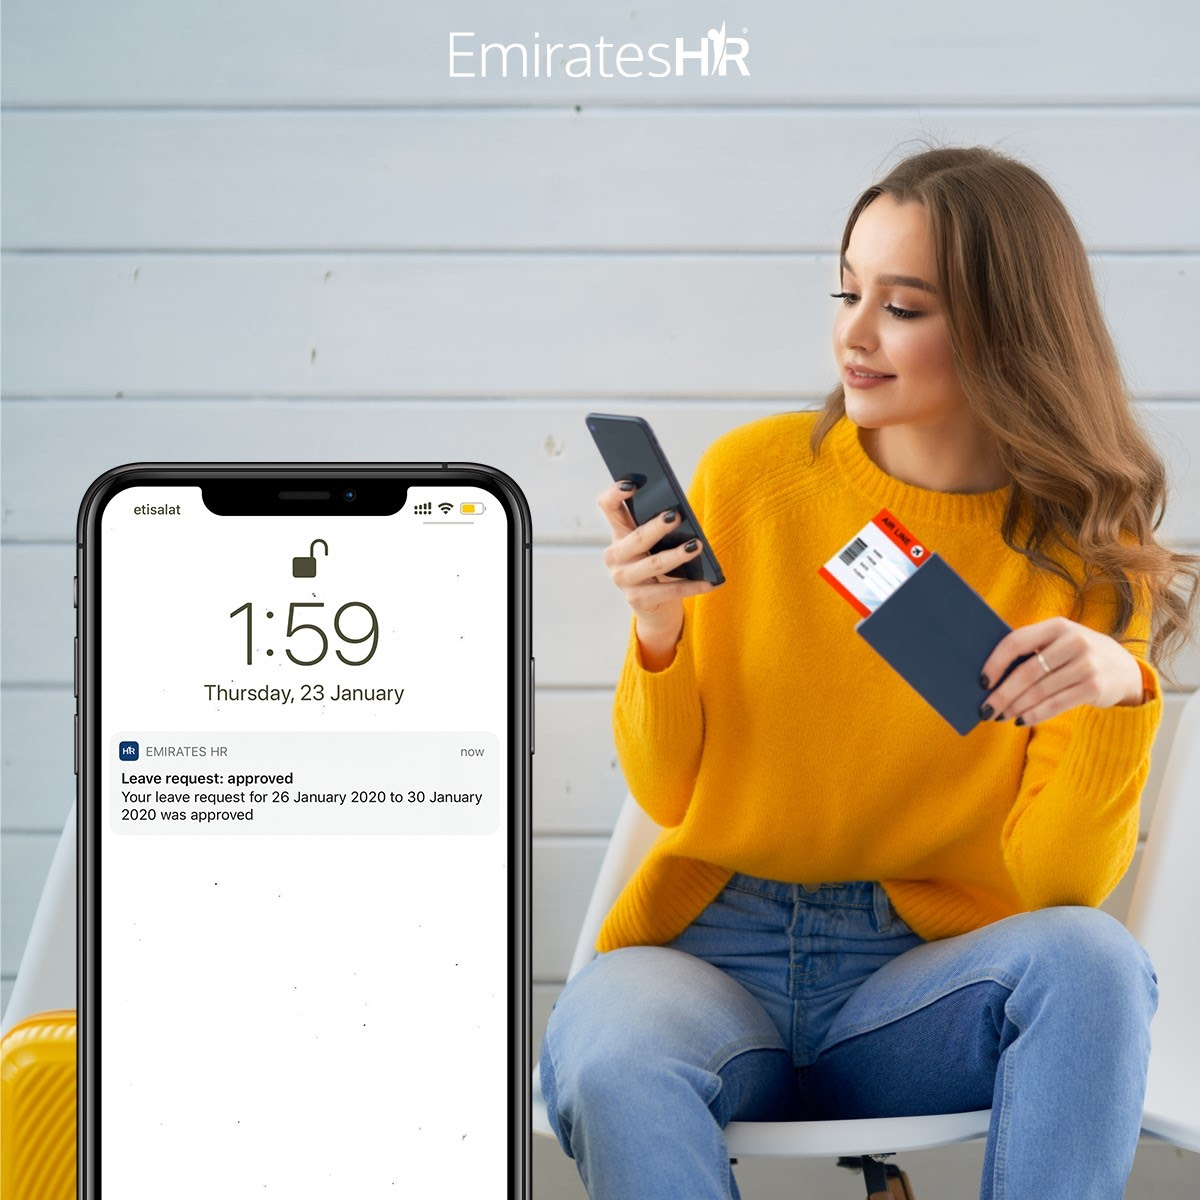 Emirates HR